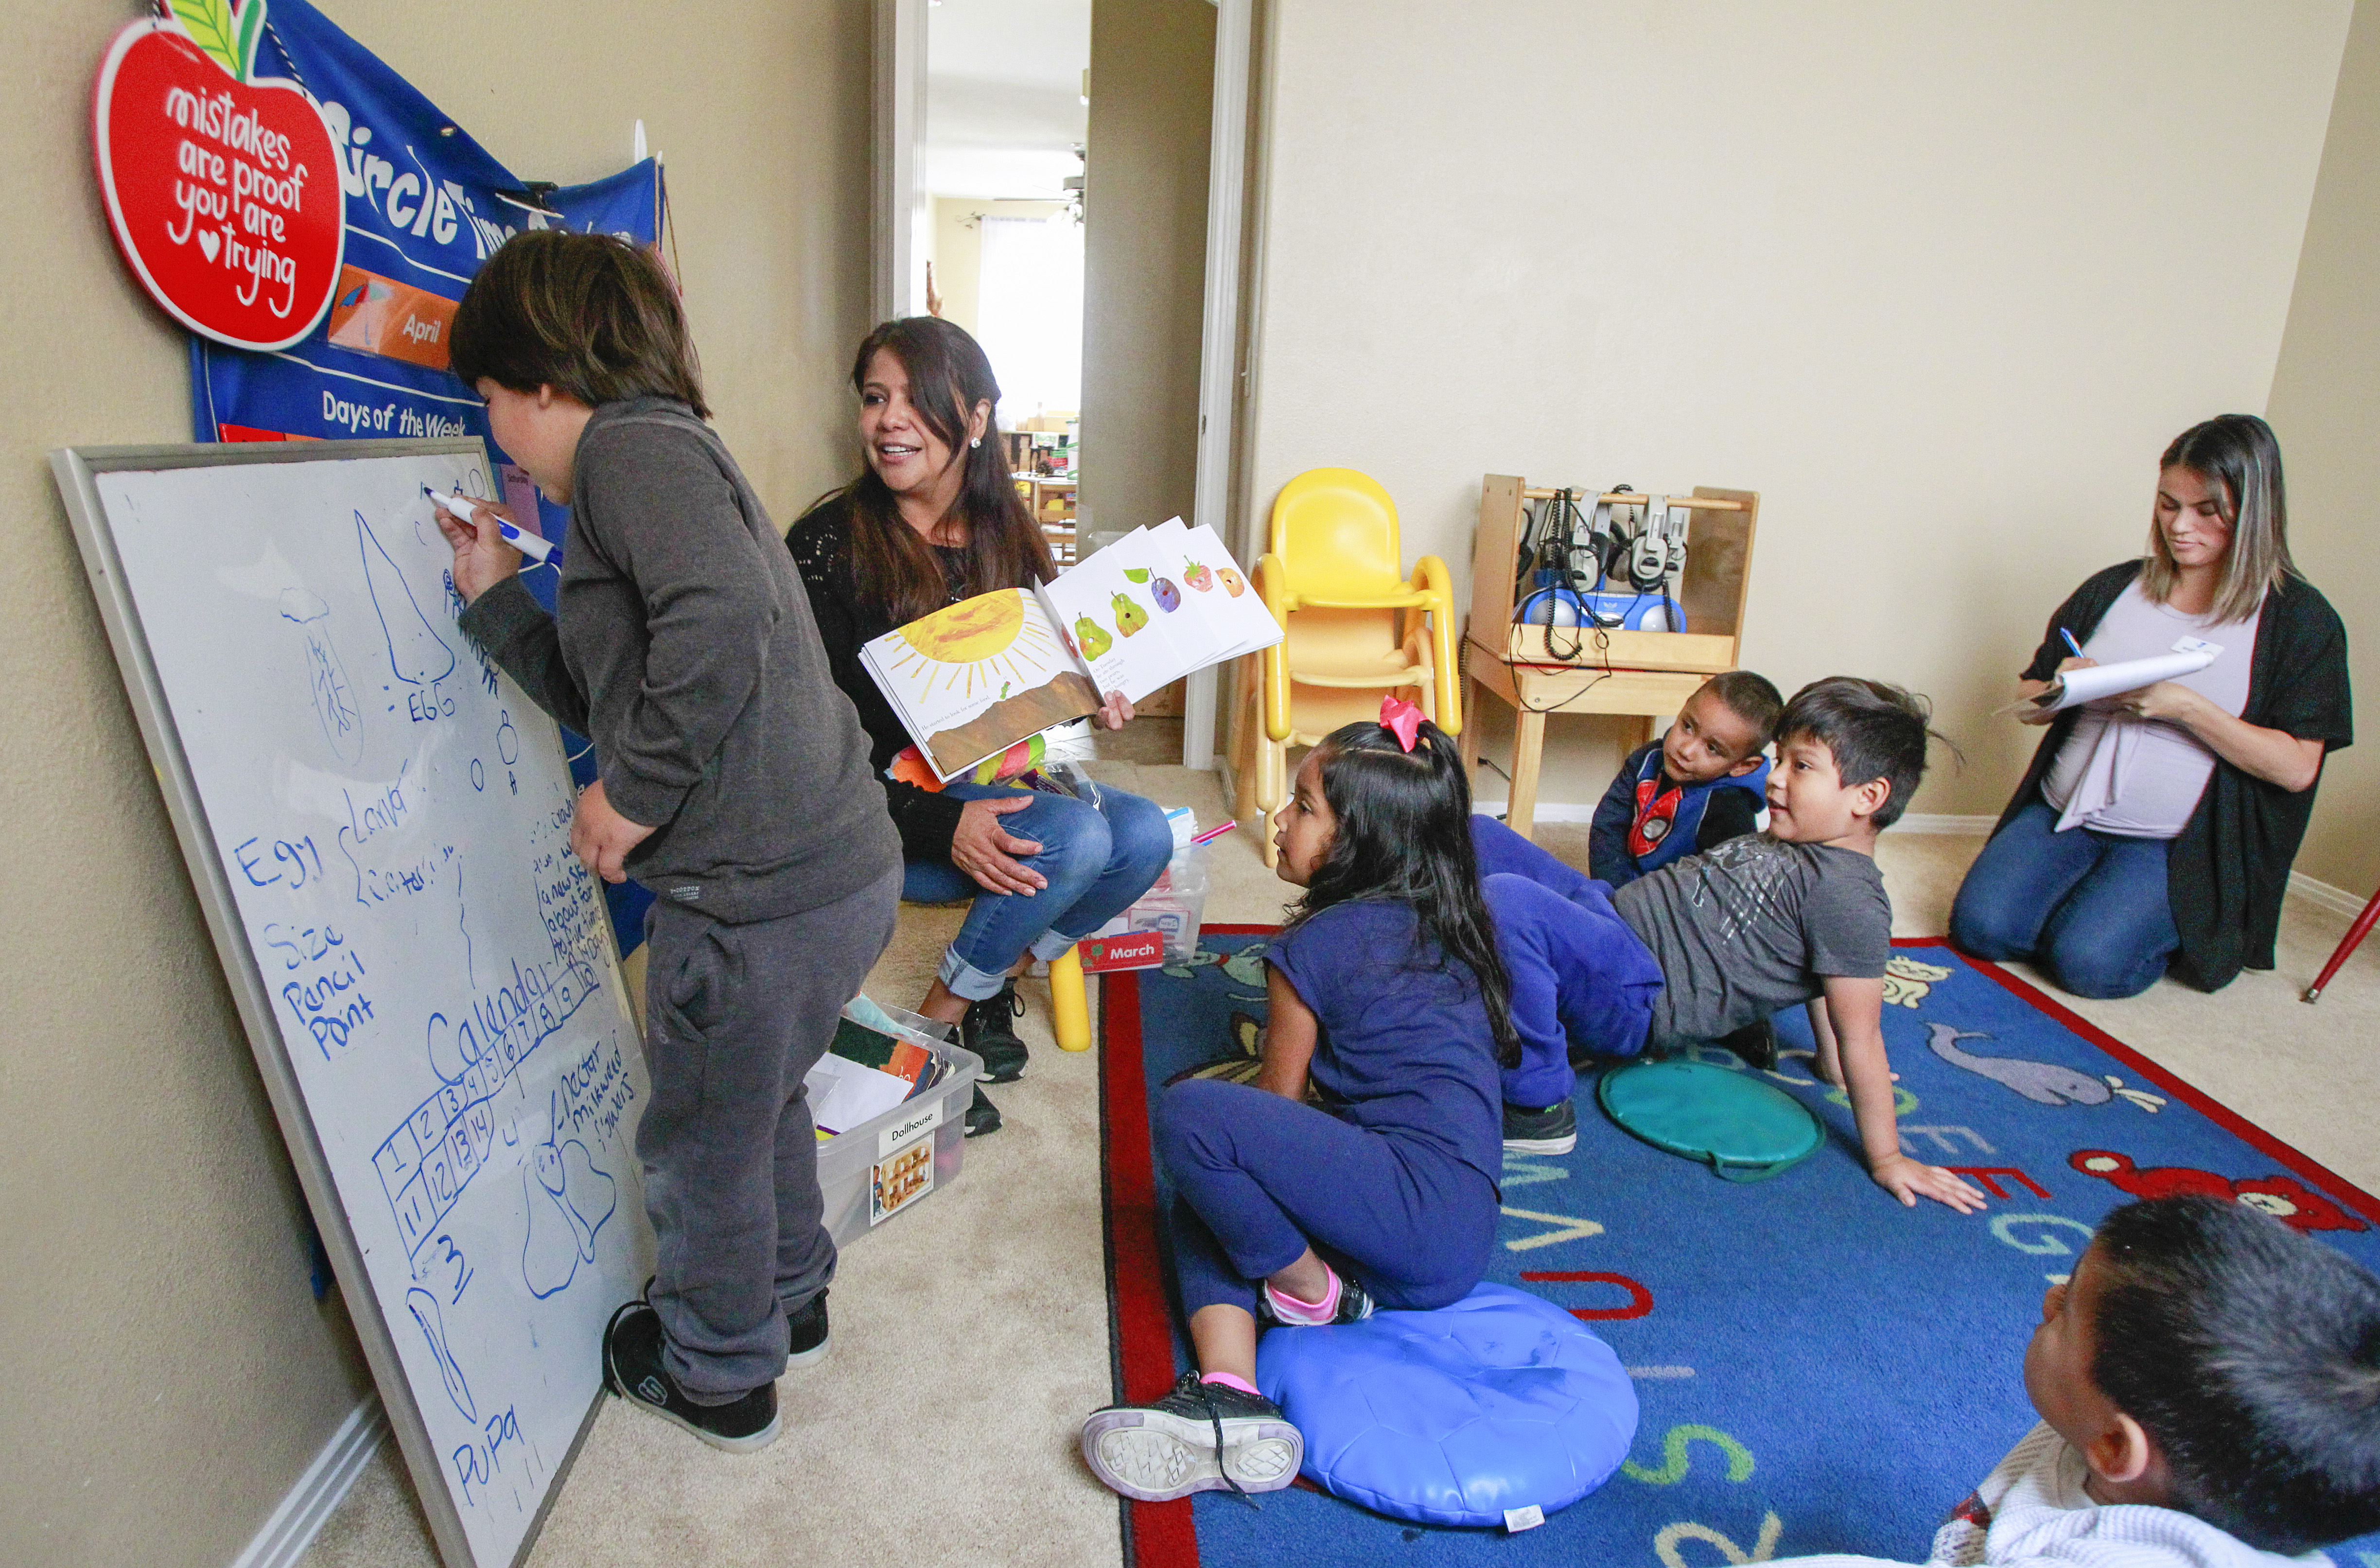 Some say the state sets a low bar for many child care programs. County efforts are working to raise it